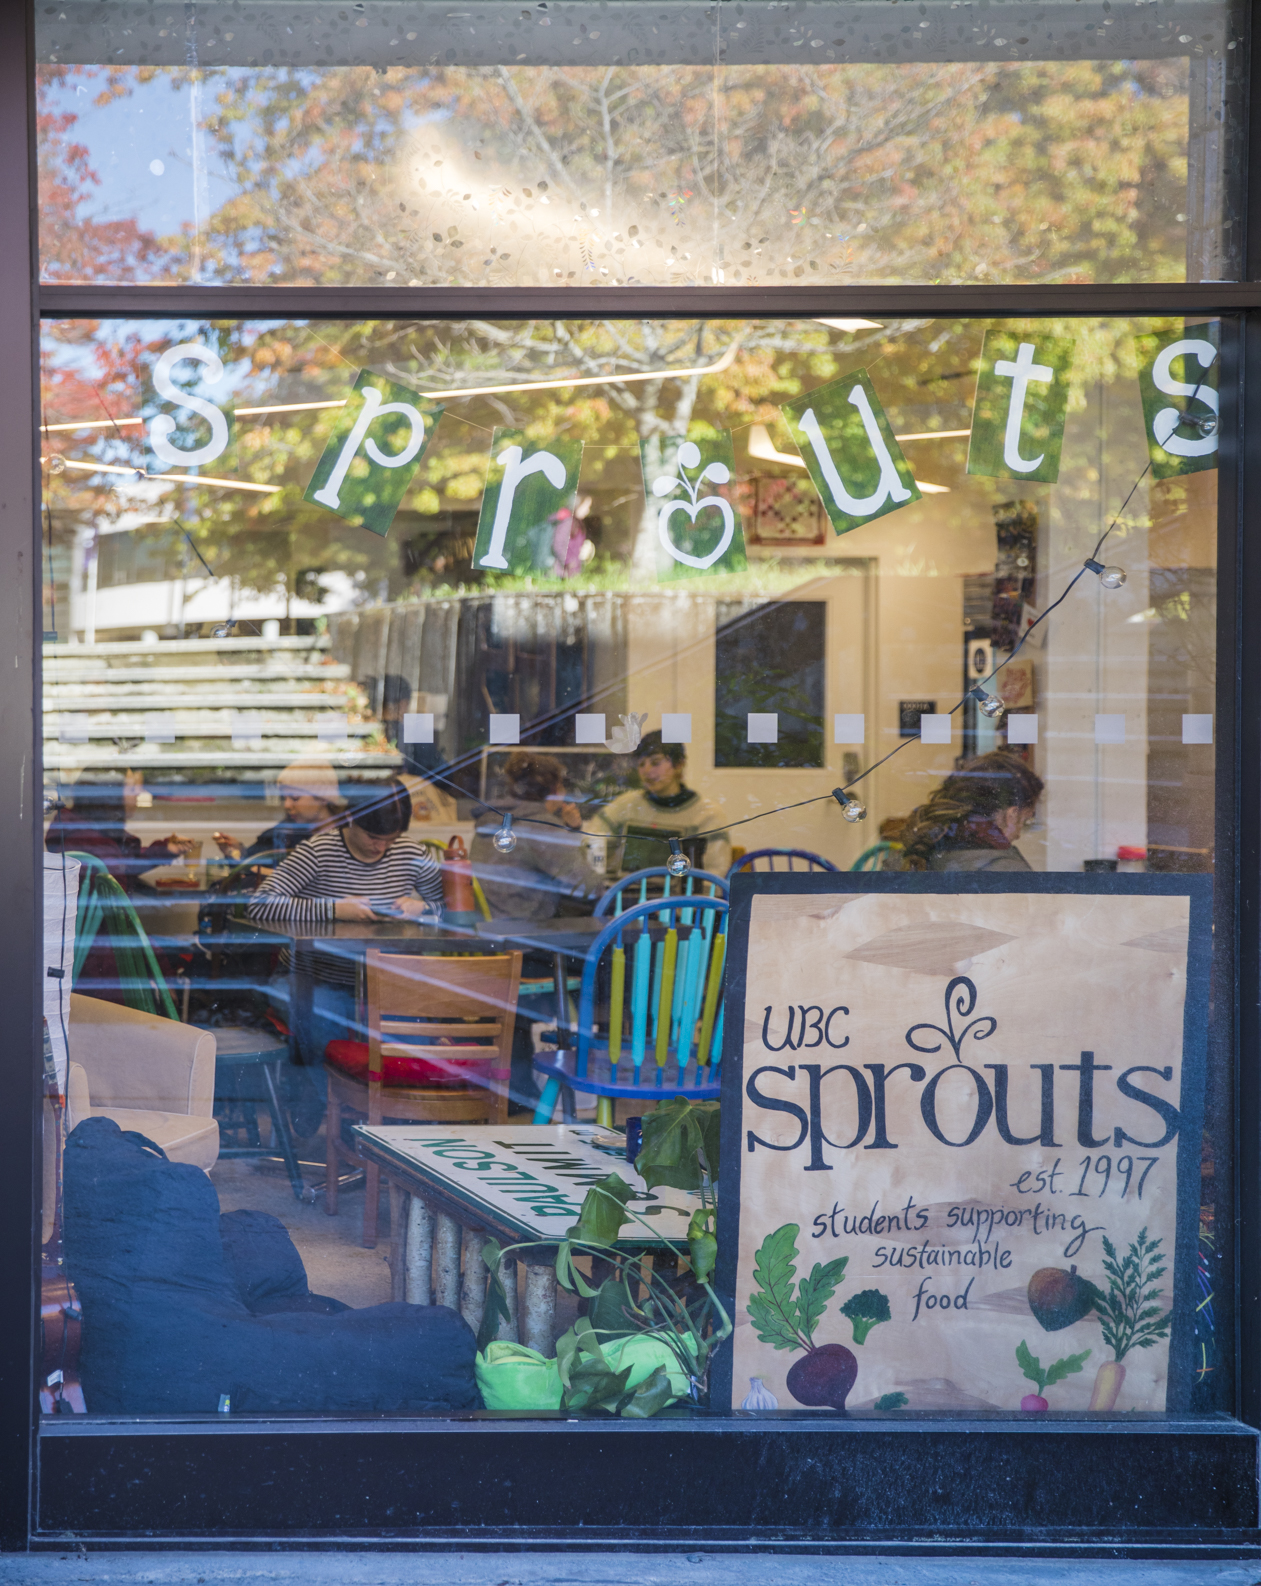 Students sitting and eating inside Sprouts.